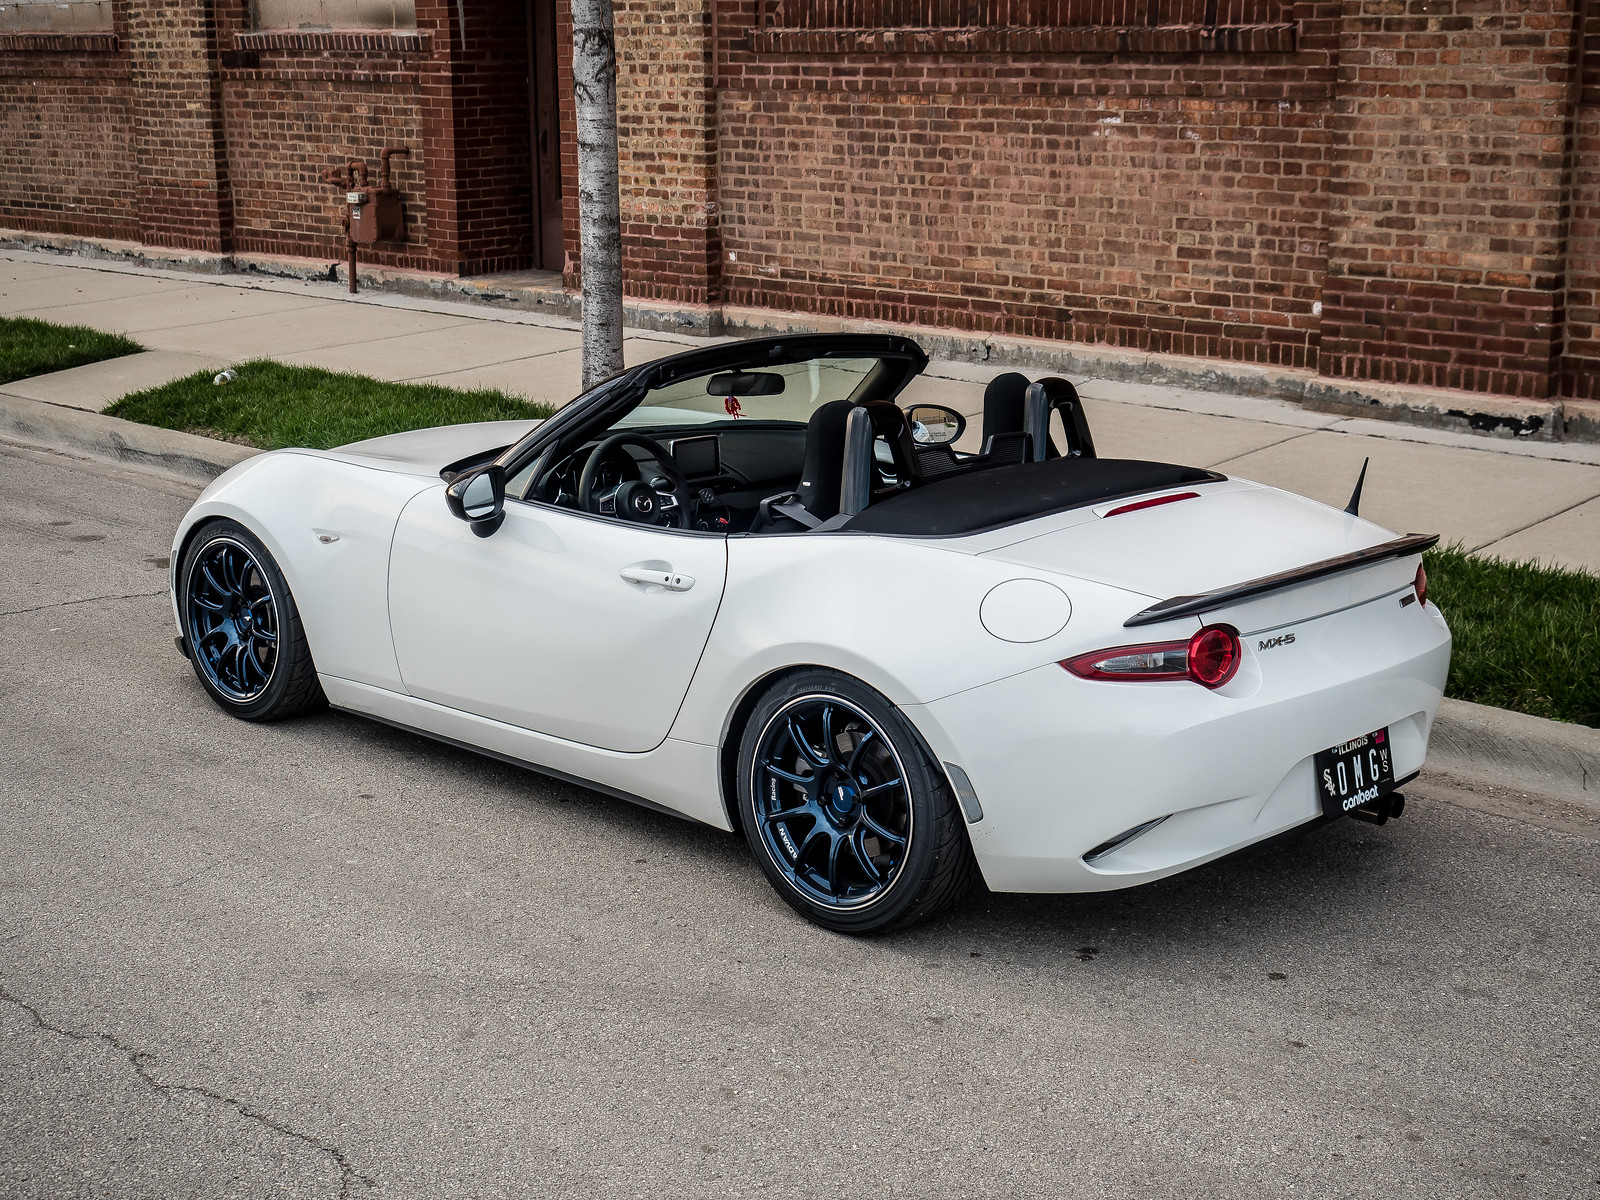 raven spoiler attachment forum showthread large the wing mazda about question